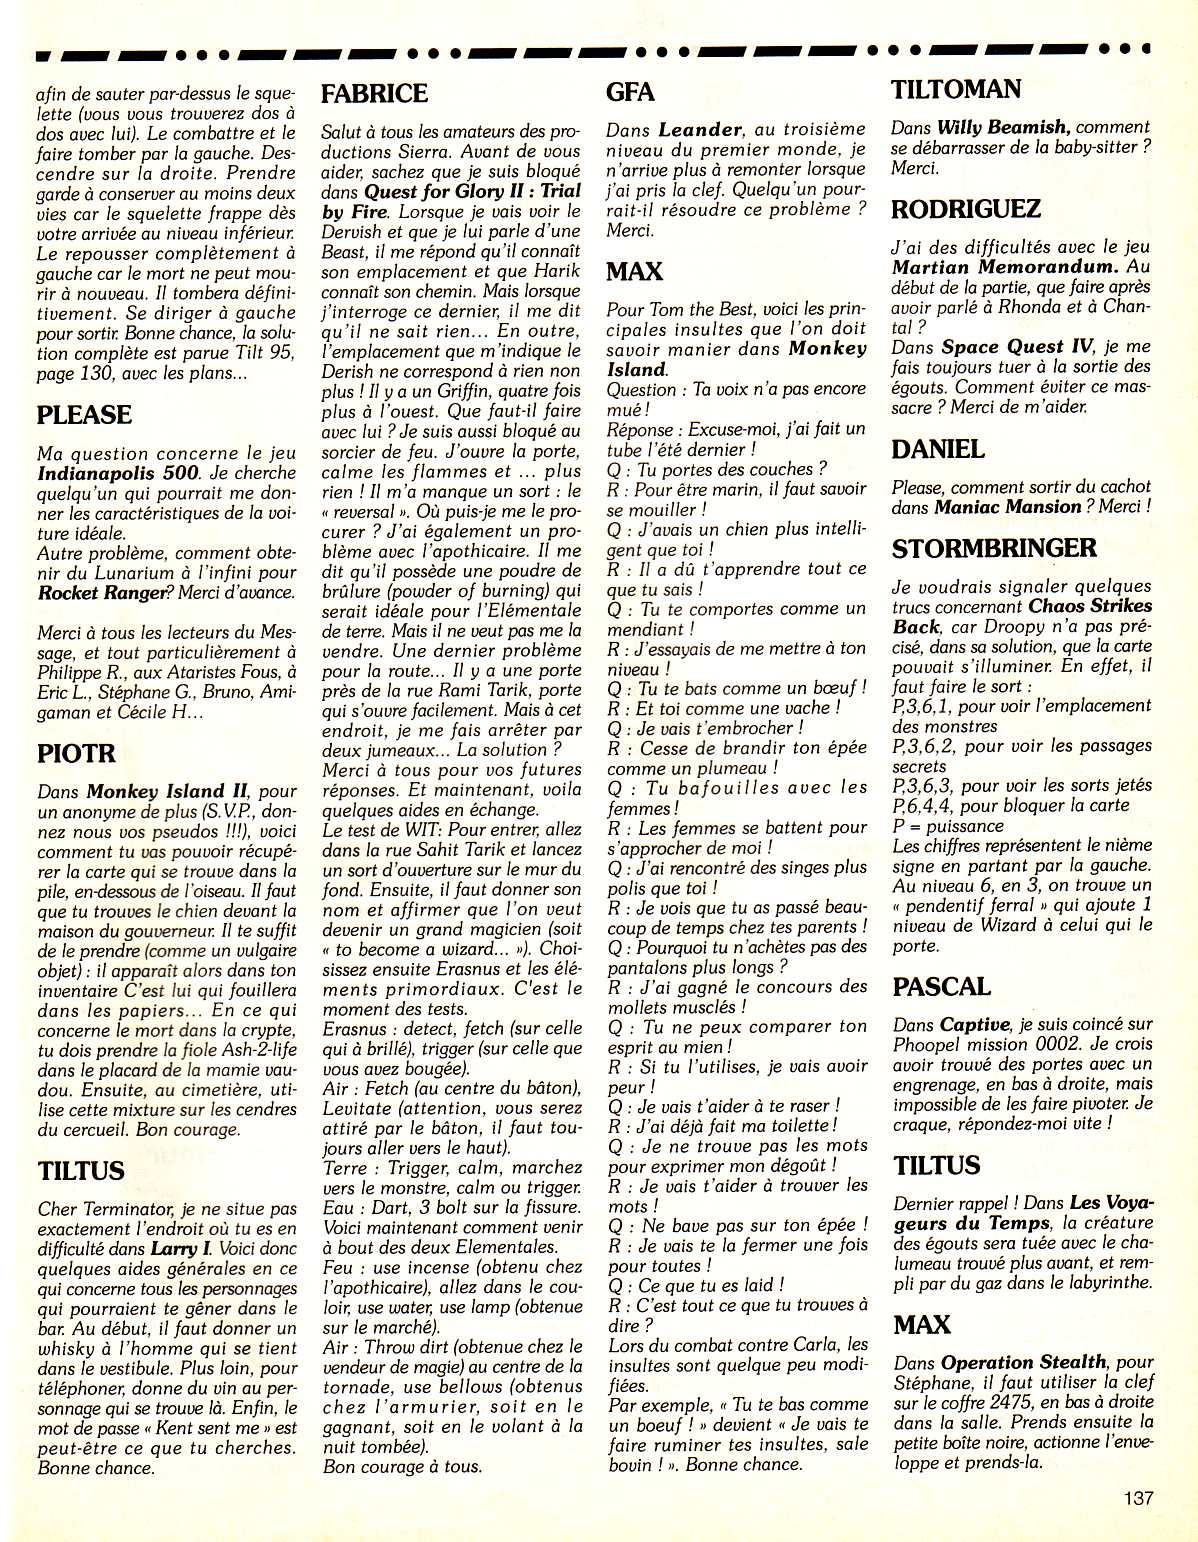 Chaos Strikes Back Hints published in French magazine 'Tilt', Issue #104, July-August 1992, Page 137